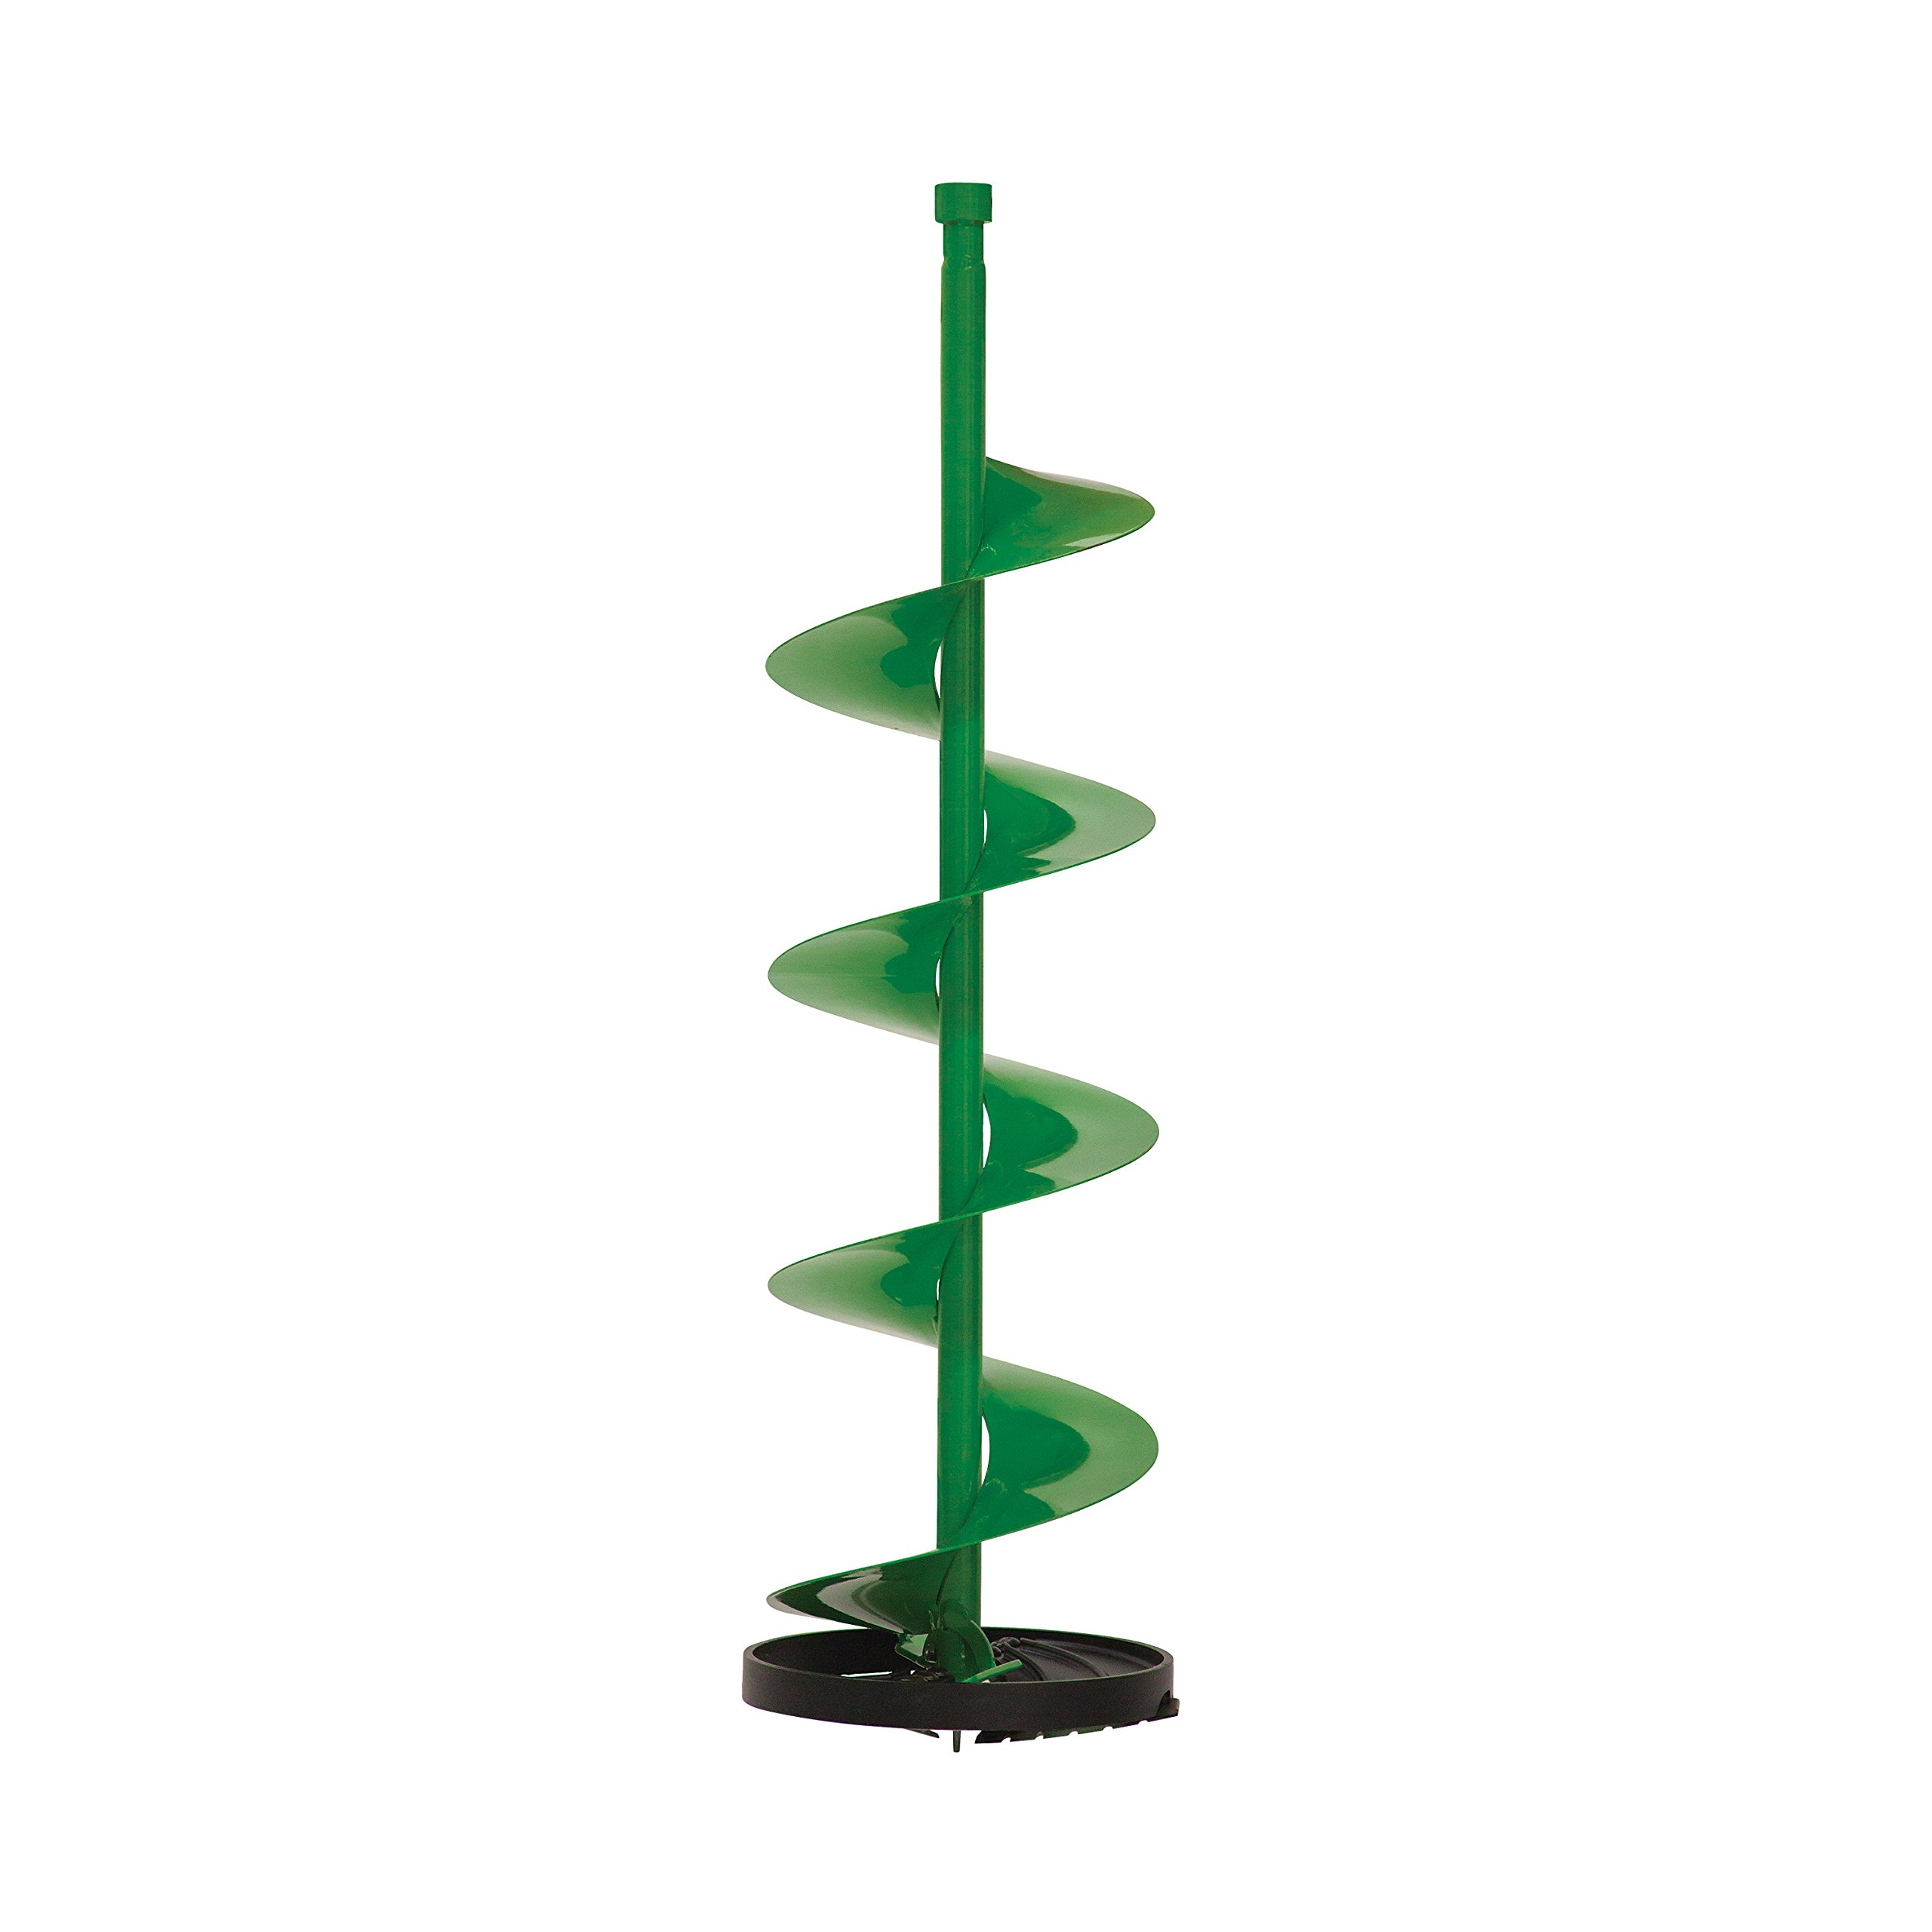 ION 29100 Straight Through 10-Inch Ice Auger Bit with Cast Aluminum Bottom, Green by Ion